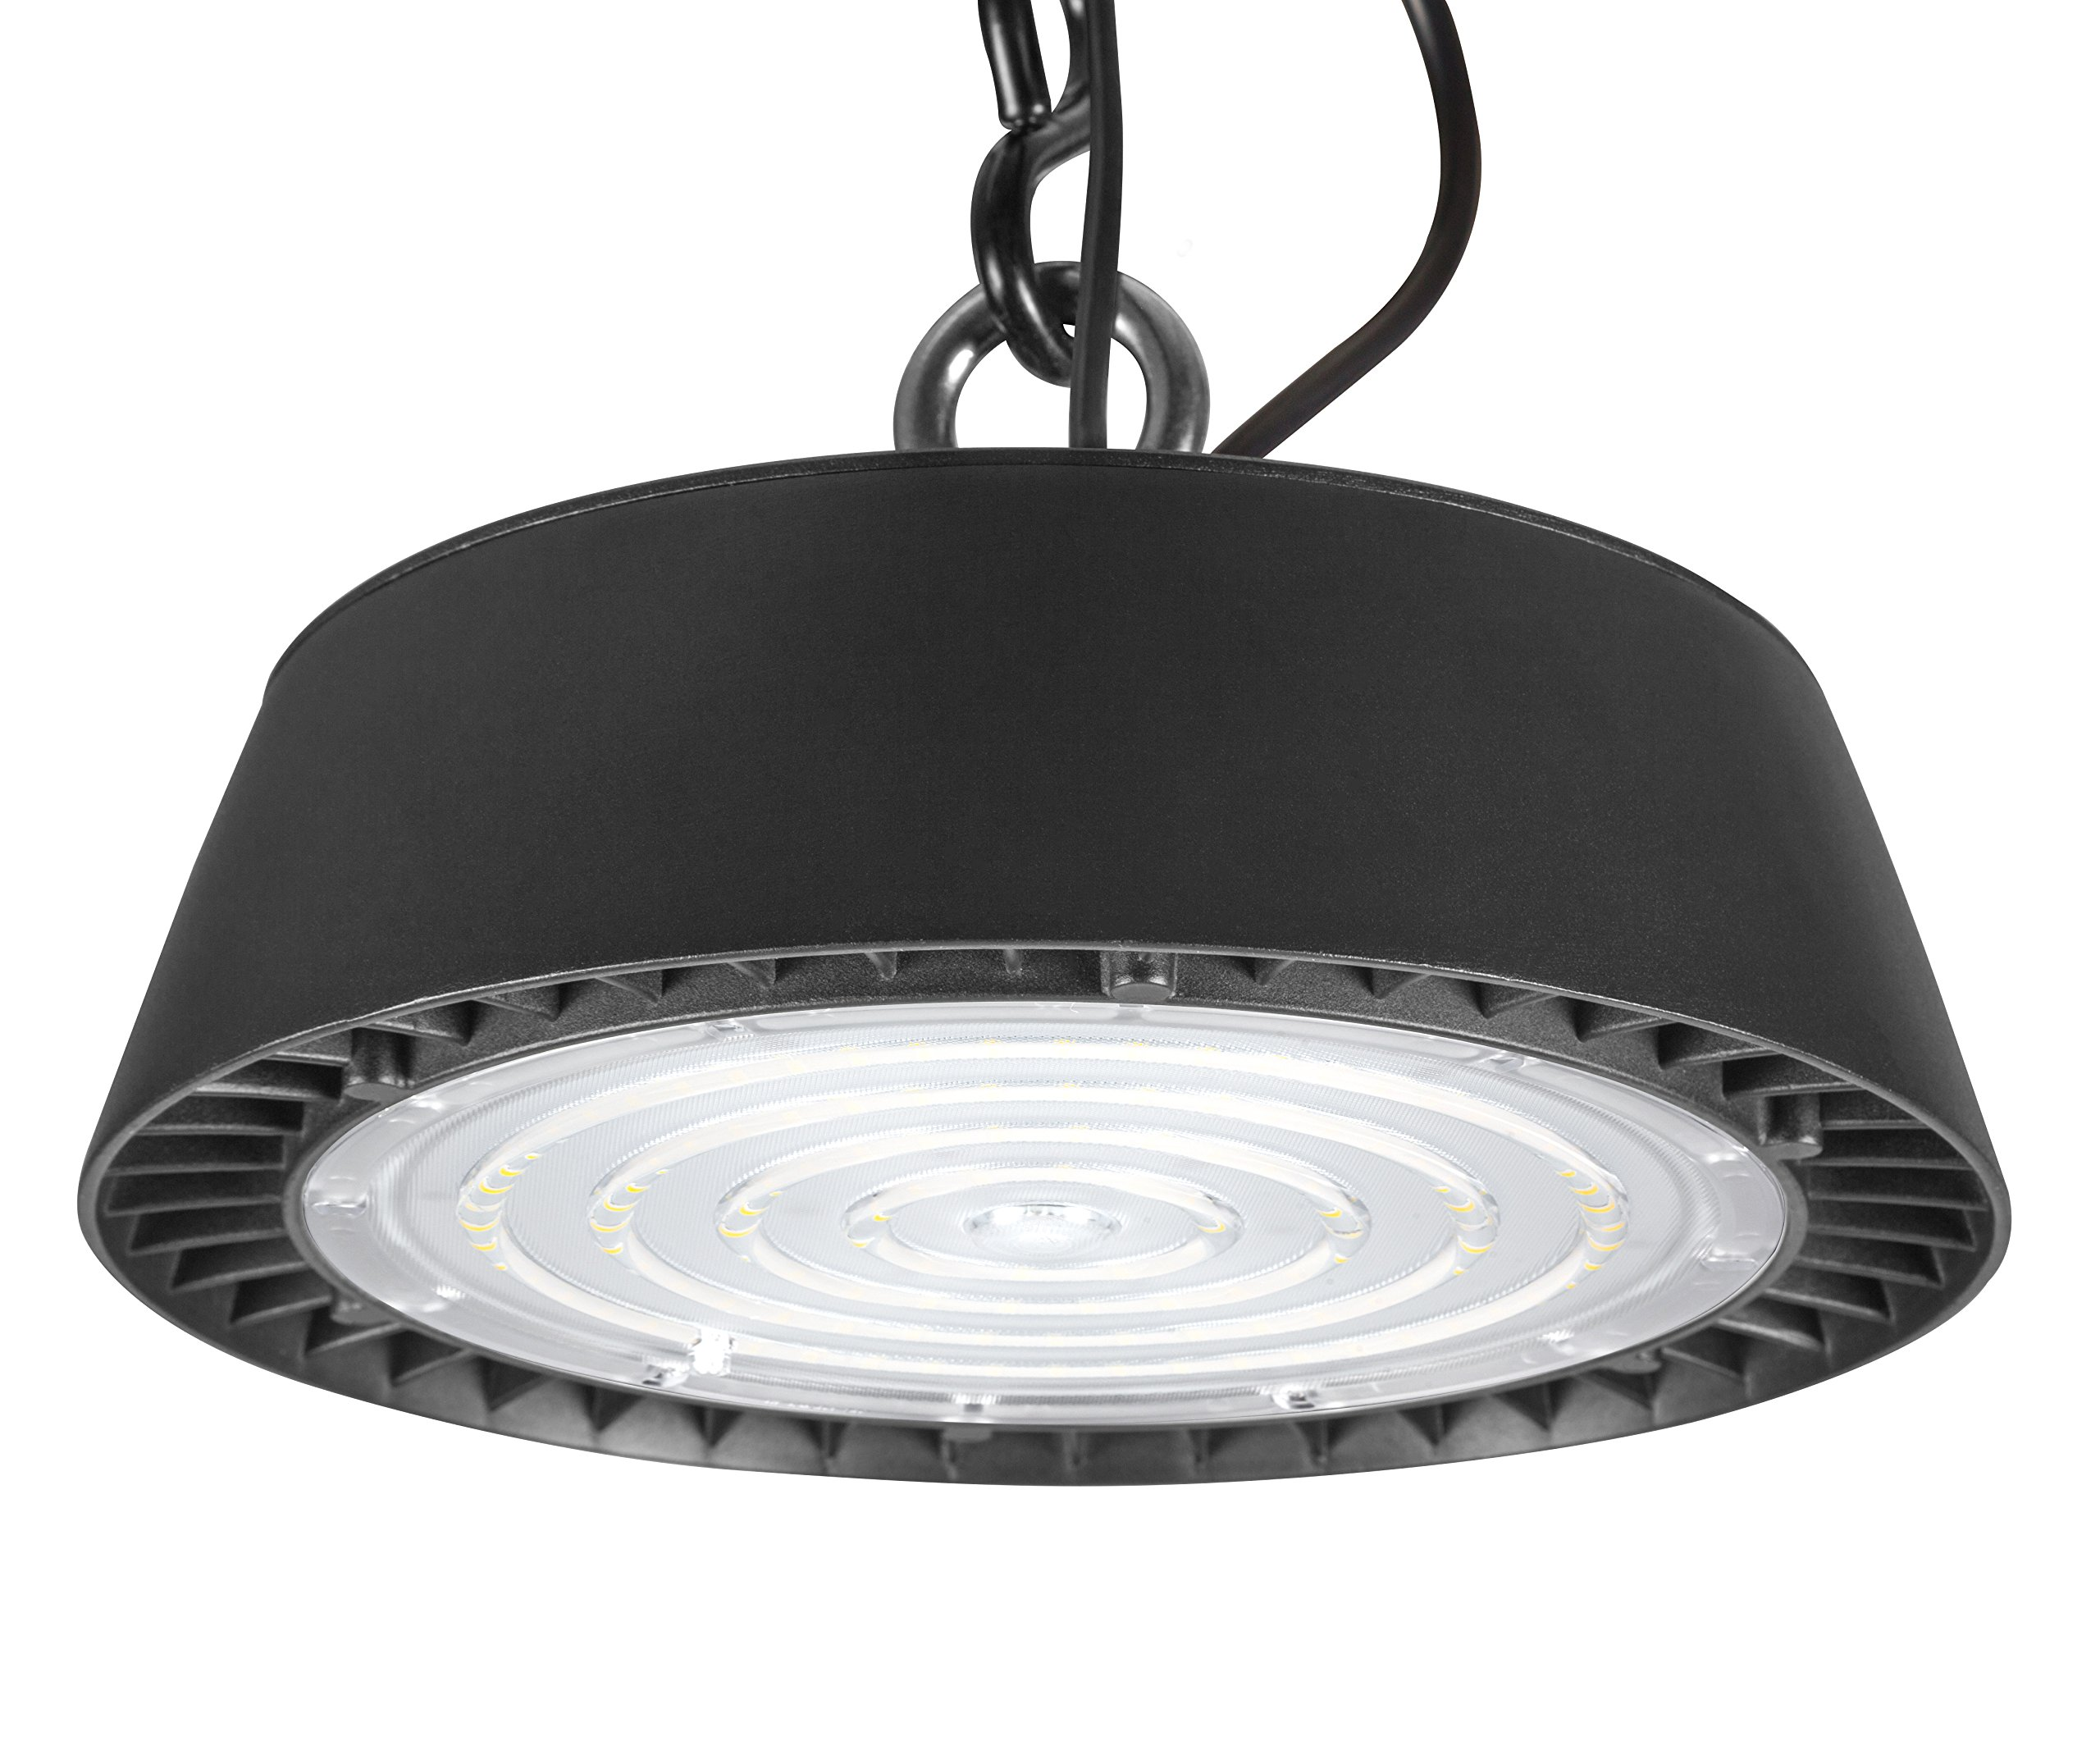 Hyperikon UFO LED High Bay Light 100W, 14000 Lumens, Sleek Super Bright Commercial Bay Lighting with Fresnel Lens, Dimmable, 5700k, Waterproof IP65 Rating, UL Listed